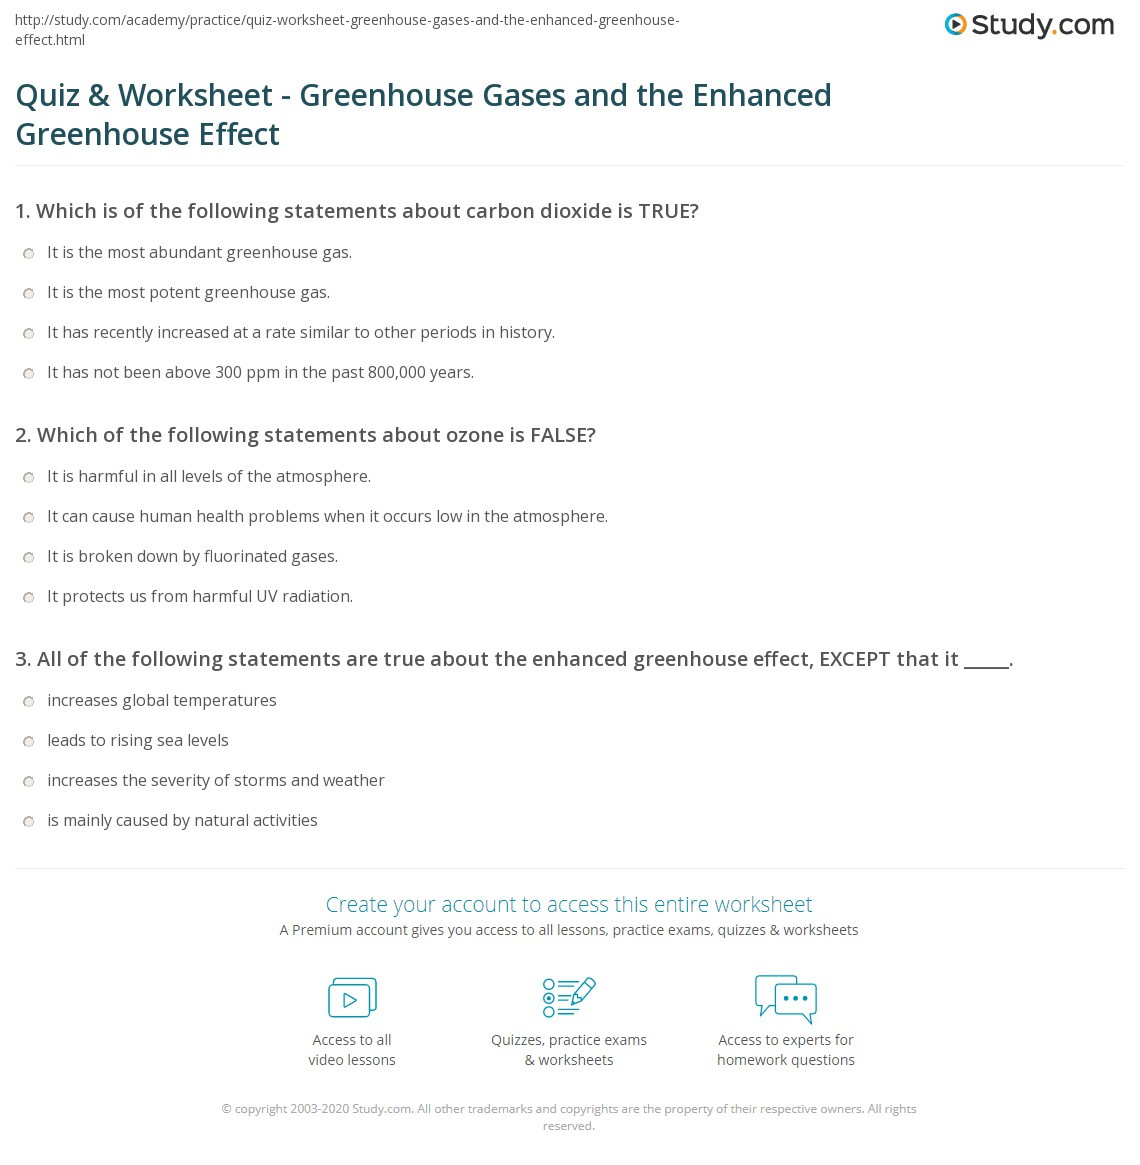 Greenhouse Effect Worksheet High School Quiz & Worksheet Greenhouse Gases and the Enhanced